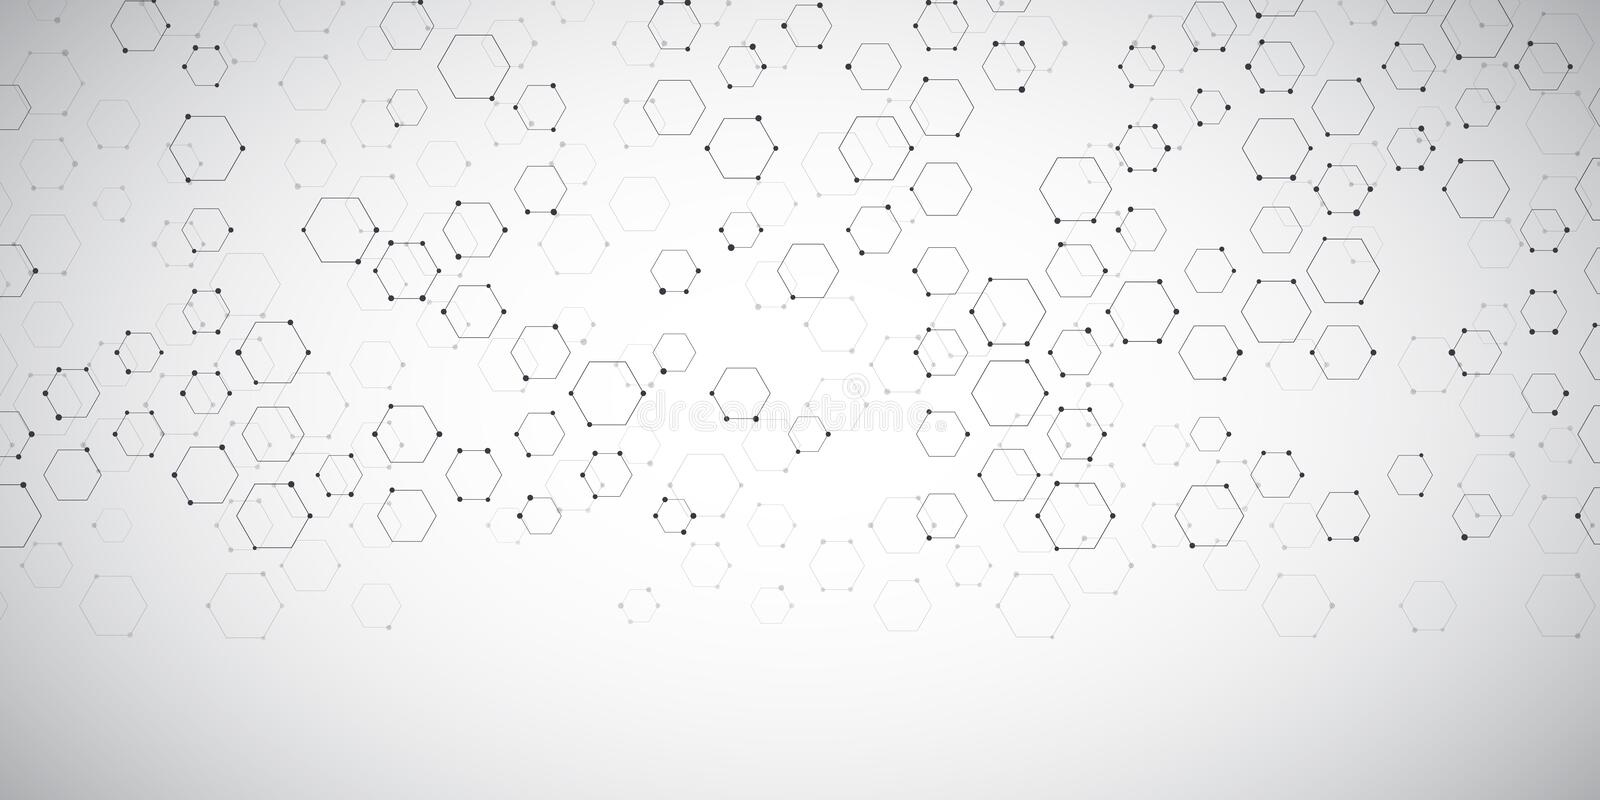 Banner background with abstract connections design royalty free illustration